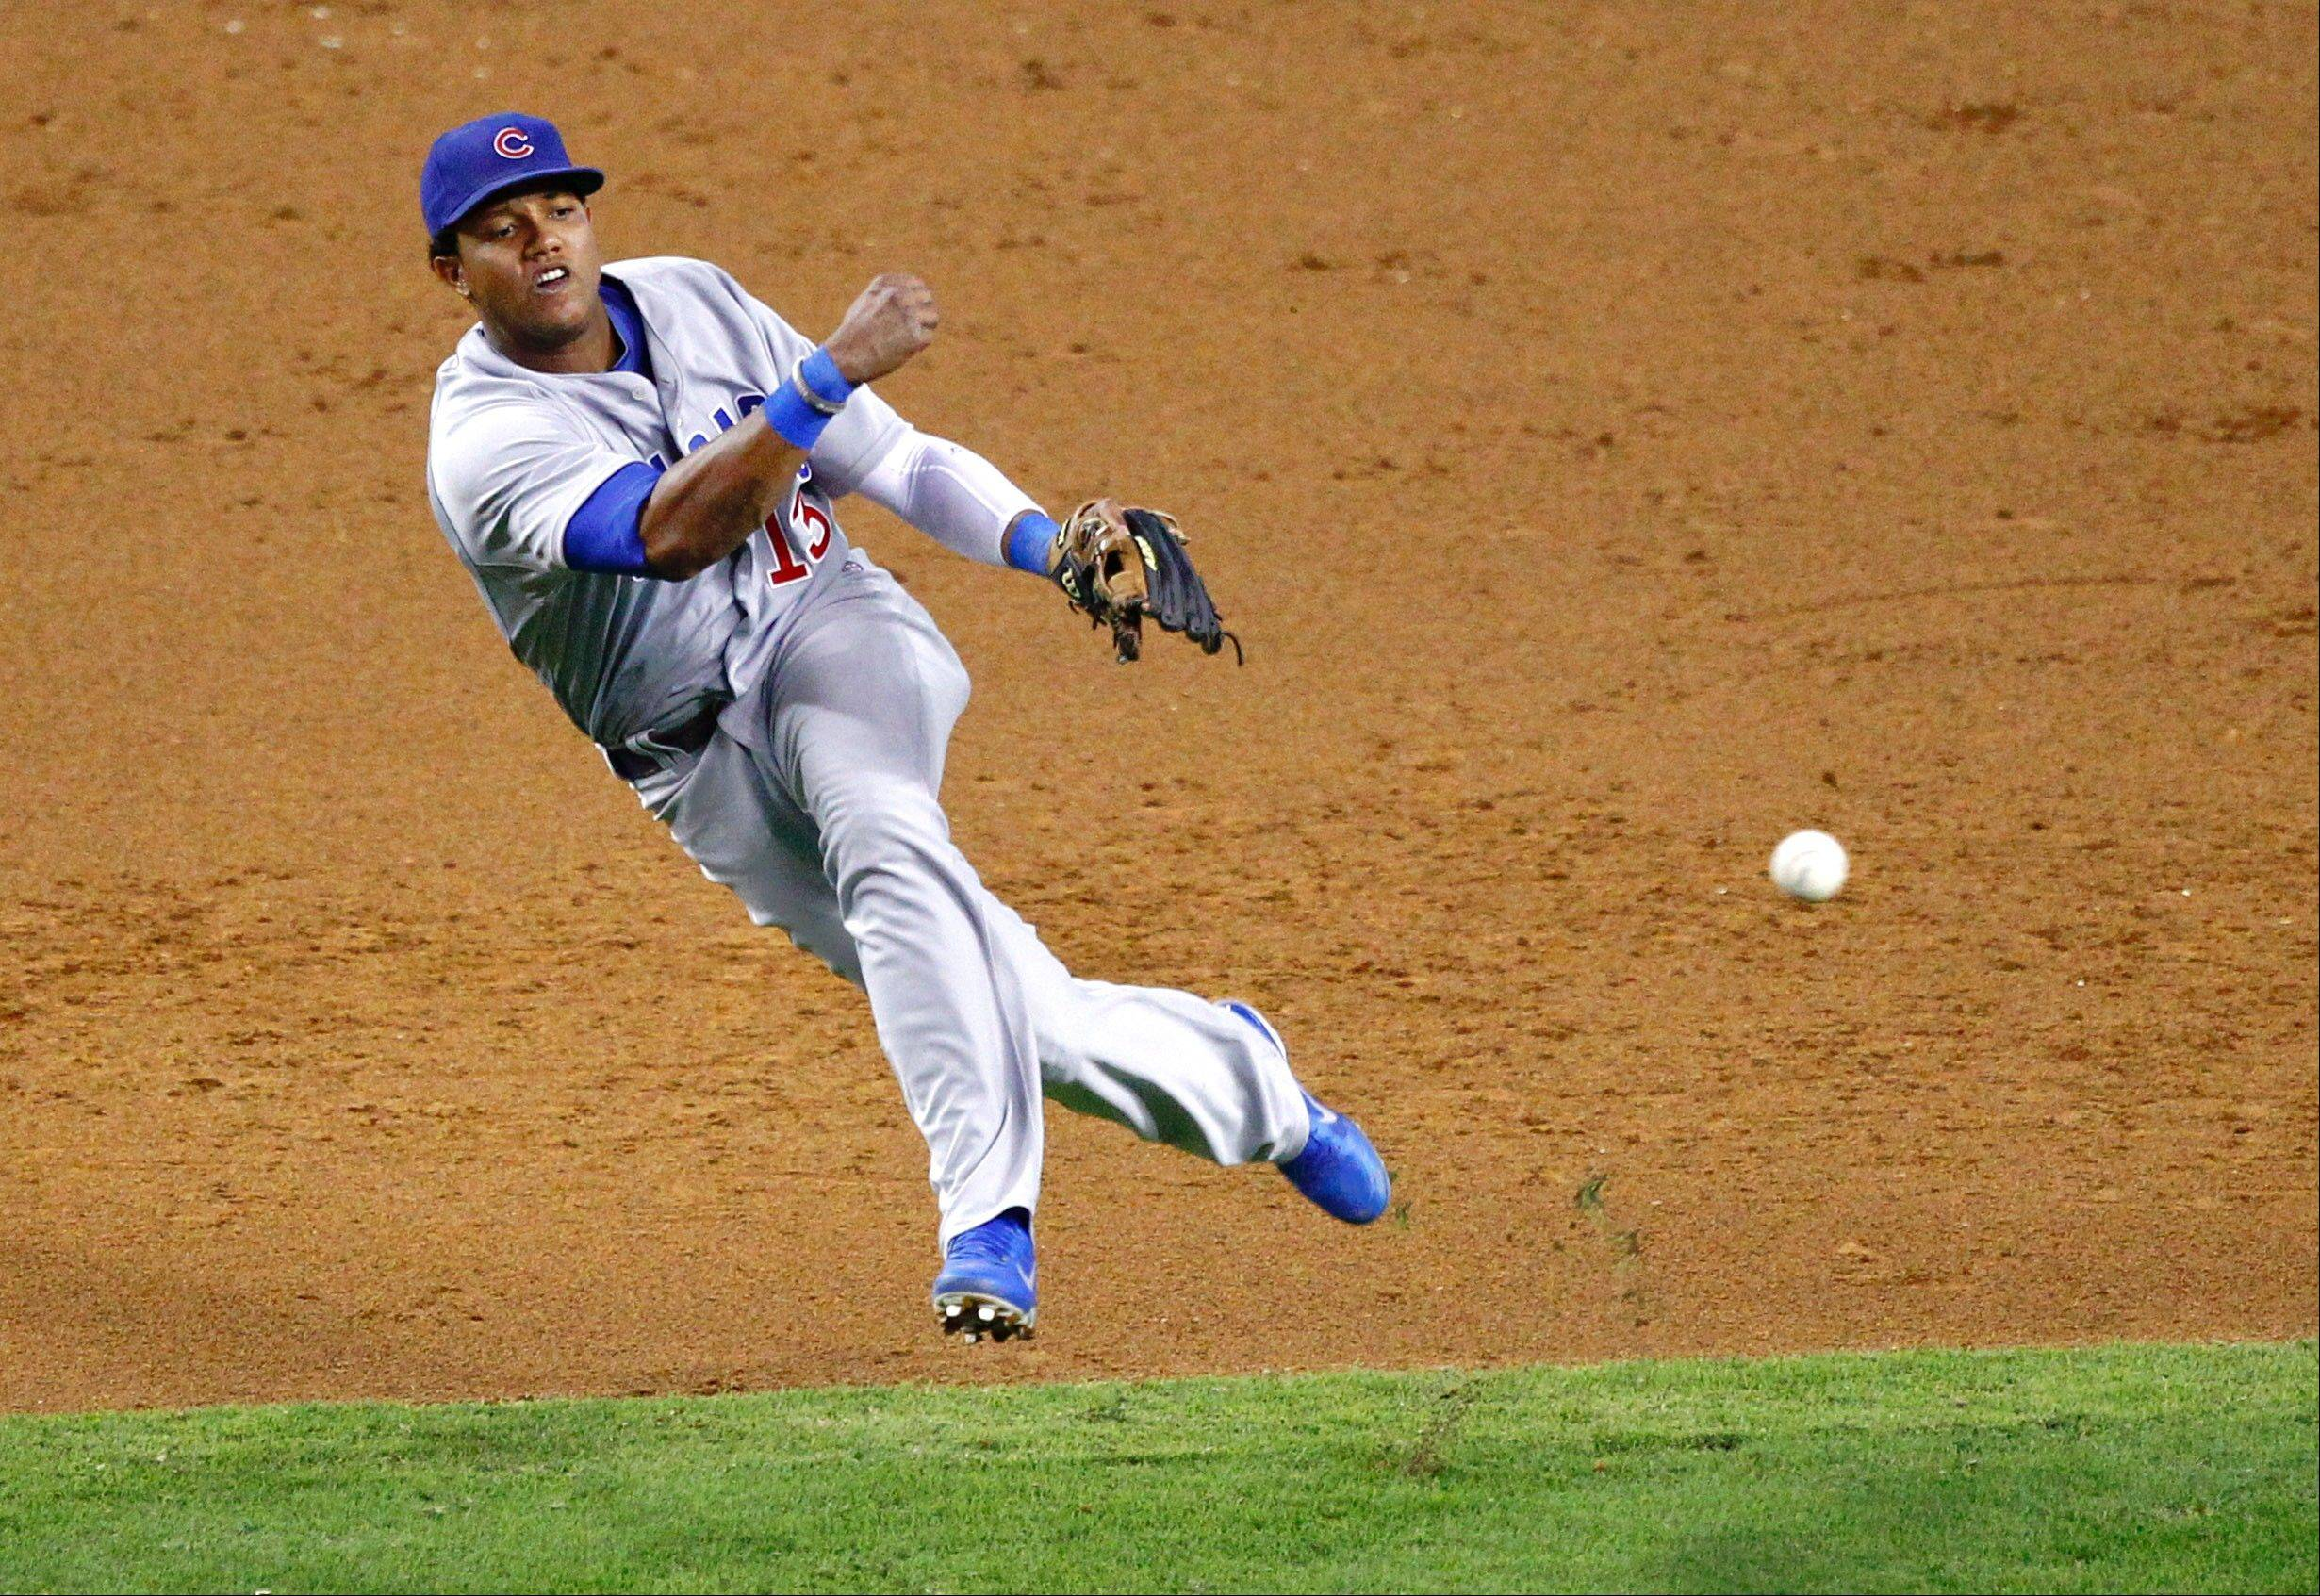 Chicago Cubs' Starlin Castro can't throw out Arizona Diamondbacks' Chad Eaton during the eighth inning of a baseball game, Friday, Sept. 28, 2012,in Phoenix.